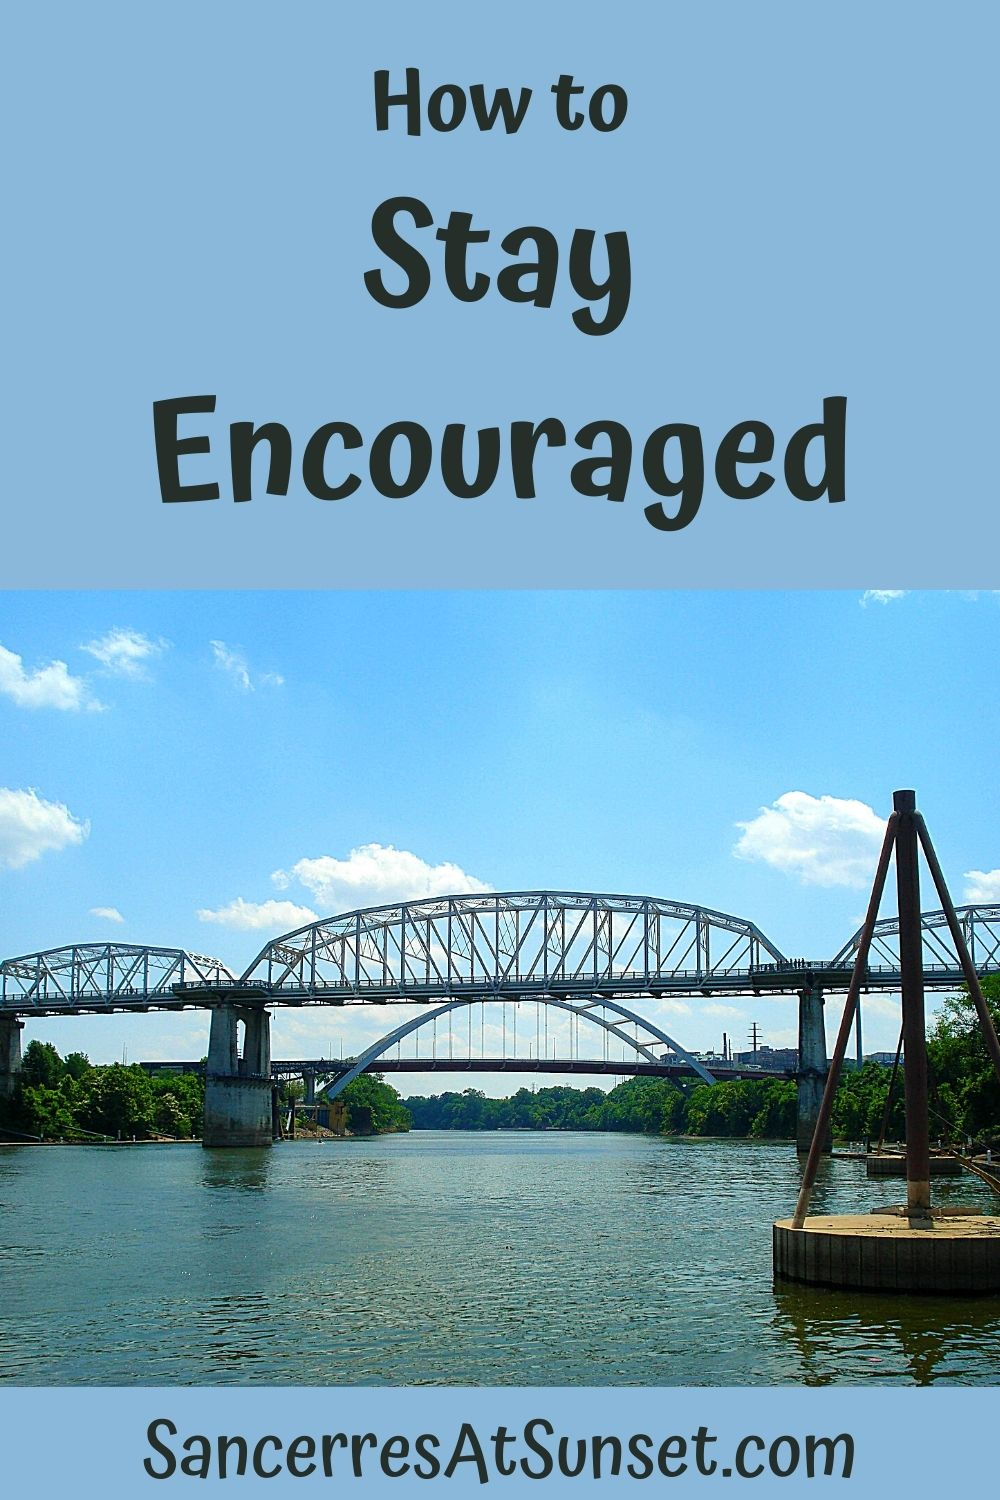 How to Stay Encouraged